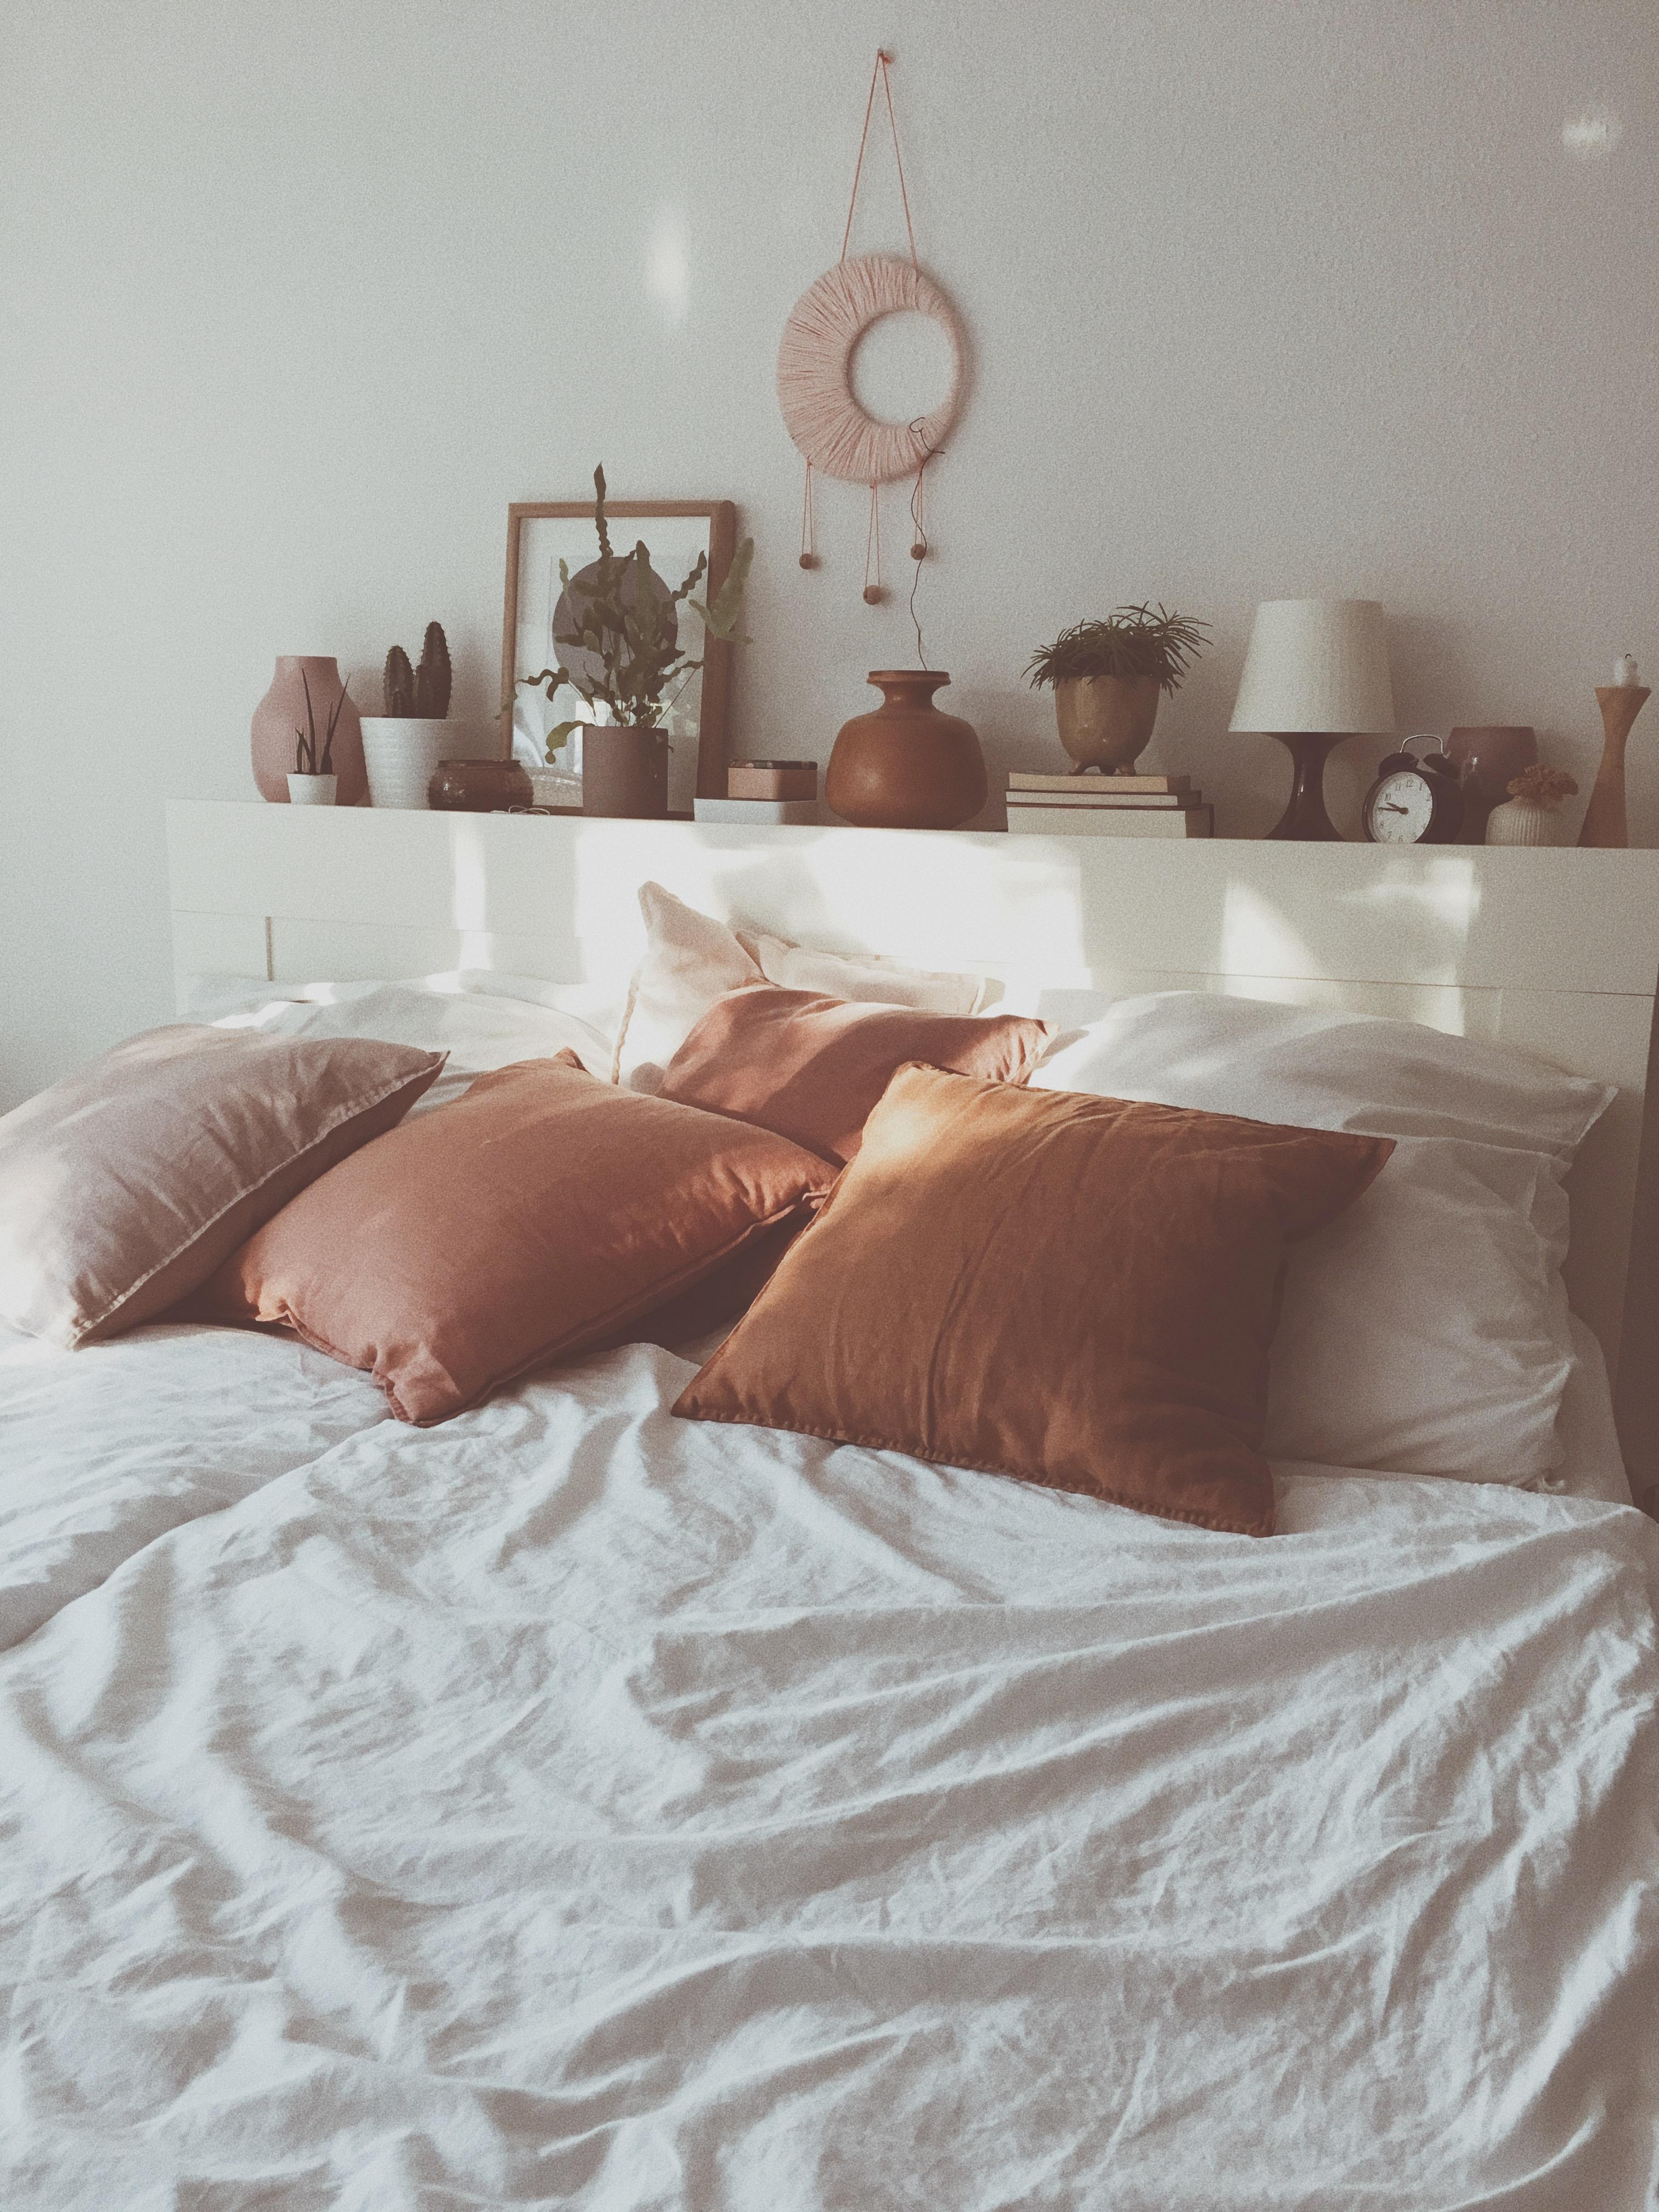 #bedroom #bedroominspo